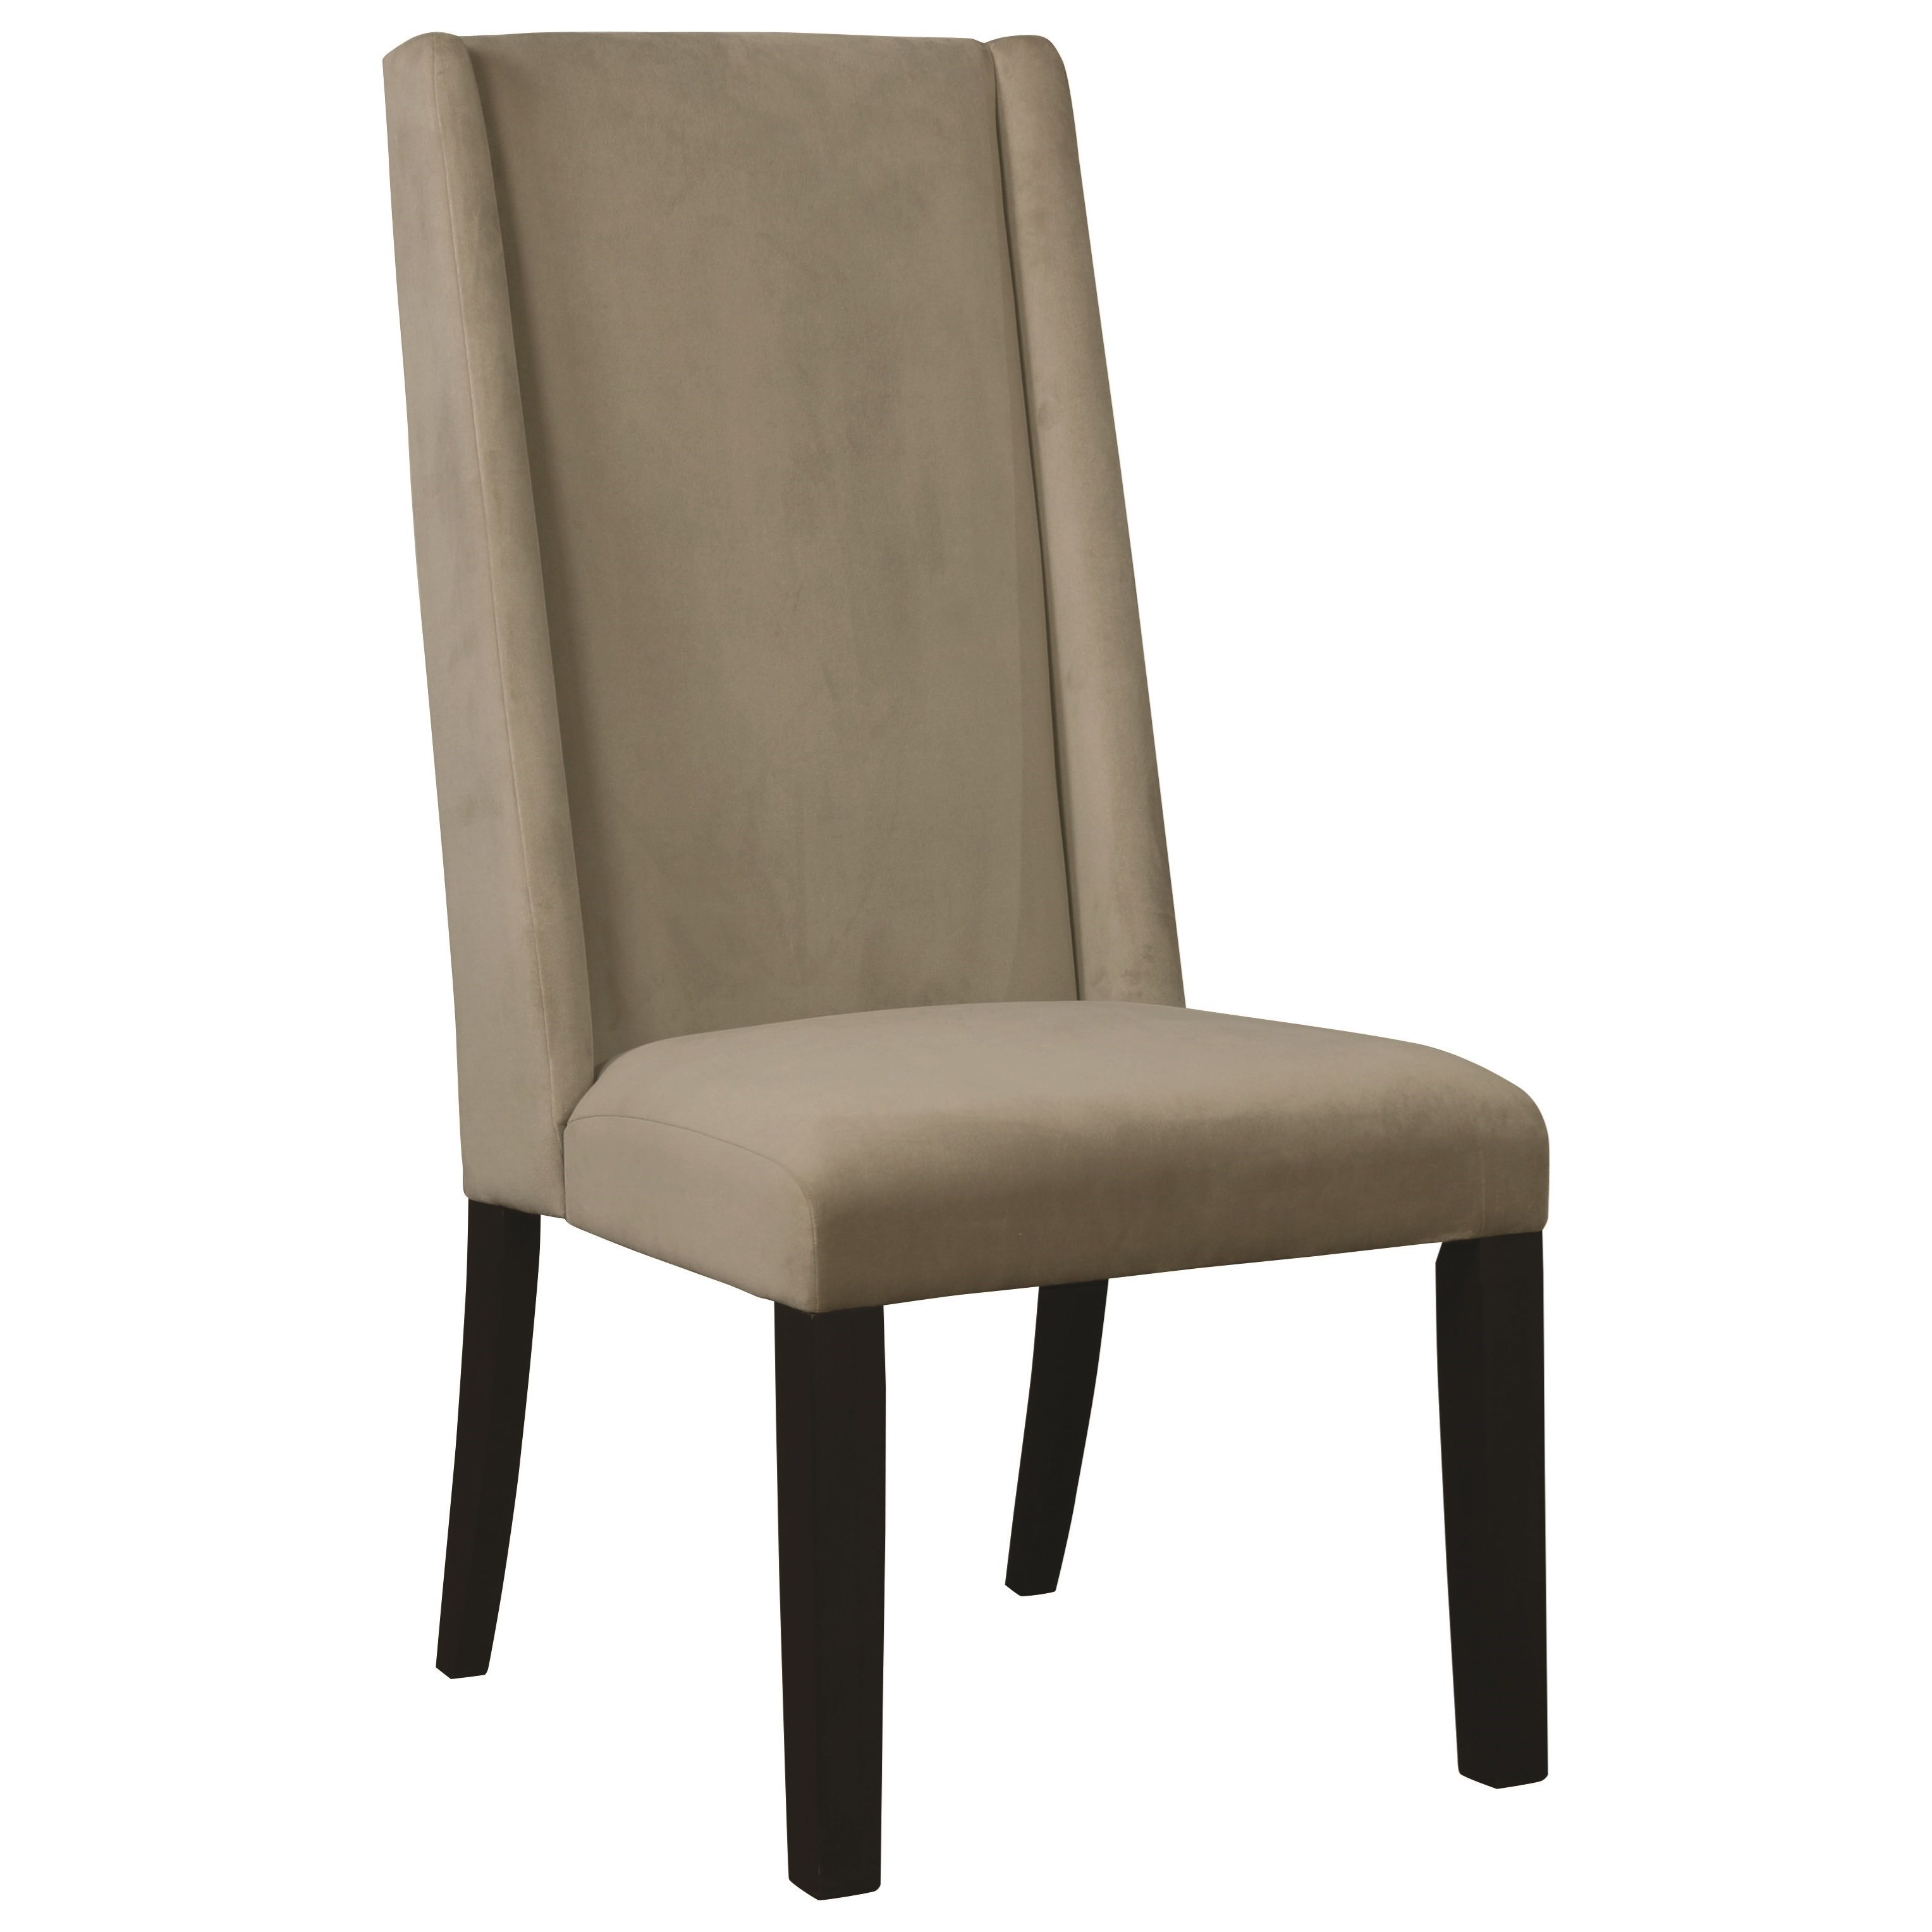 Scott Living Parson Side Chair - Item Number: 103130